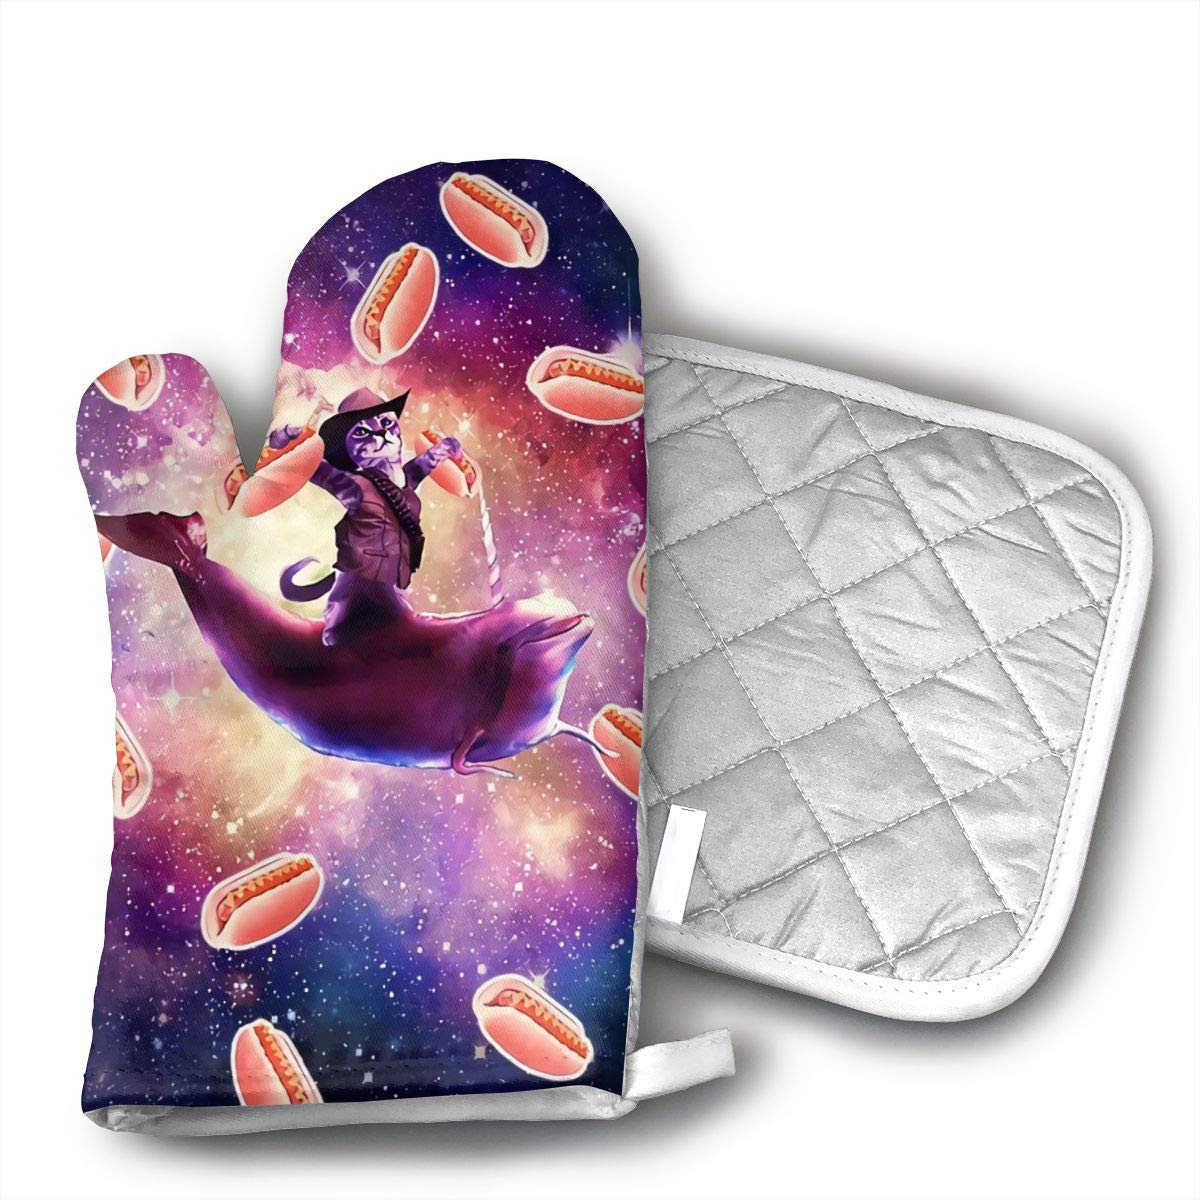 KEIOO Cowboy Space Cat On Dolphin Unicorn with Hot Dog Oven Mitts and Potholders Heat Resistant Set of 2 Kitchen Set Non-Slip Grip Oven Gloves BBQ Cooking Baking Grilling